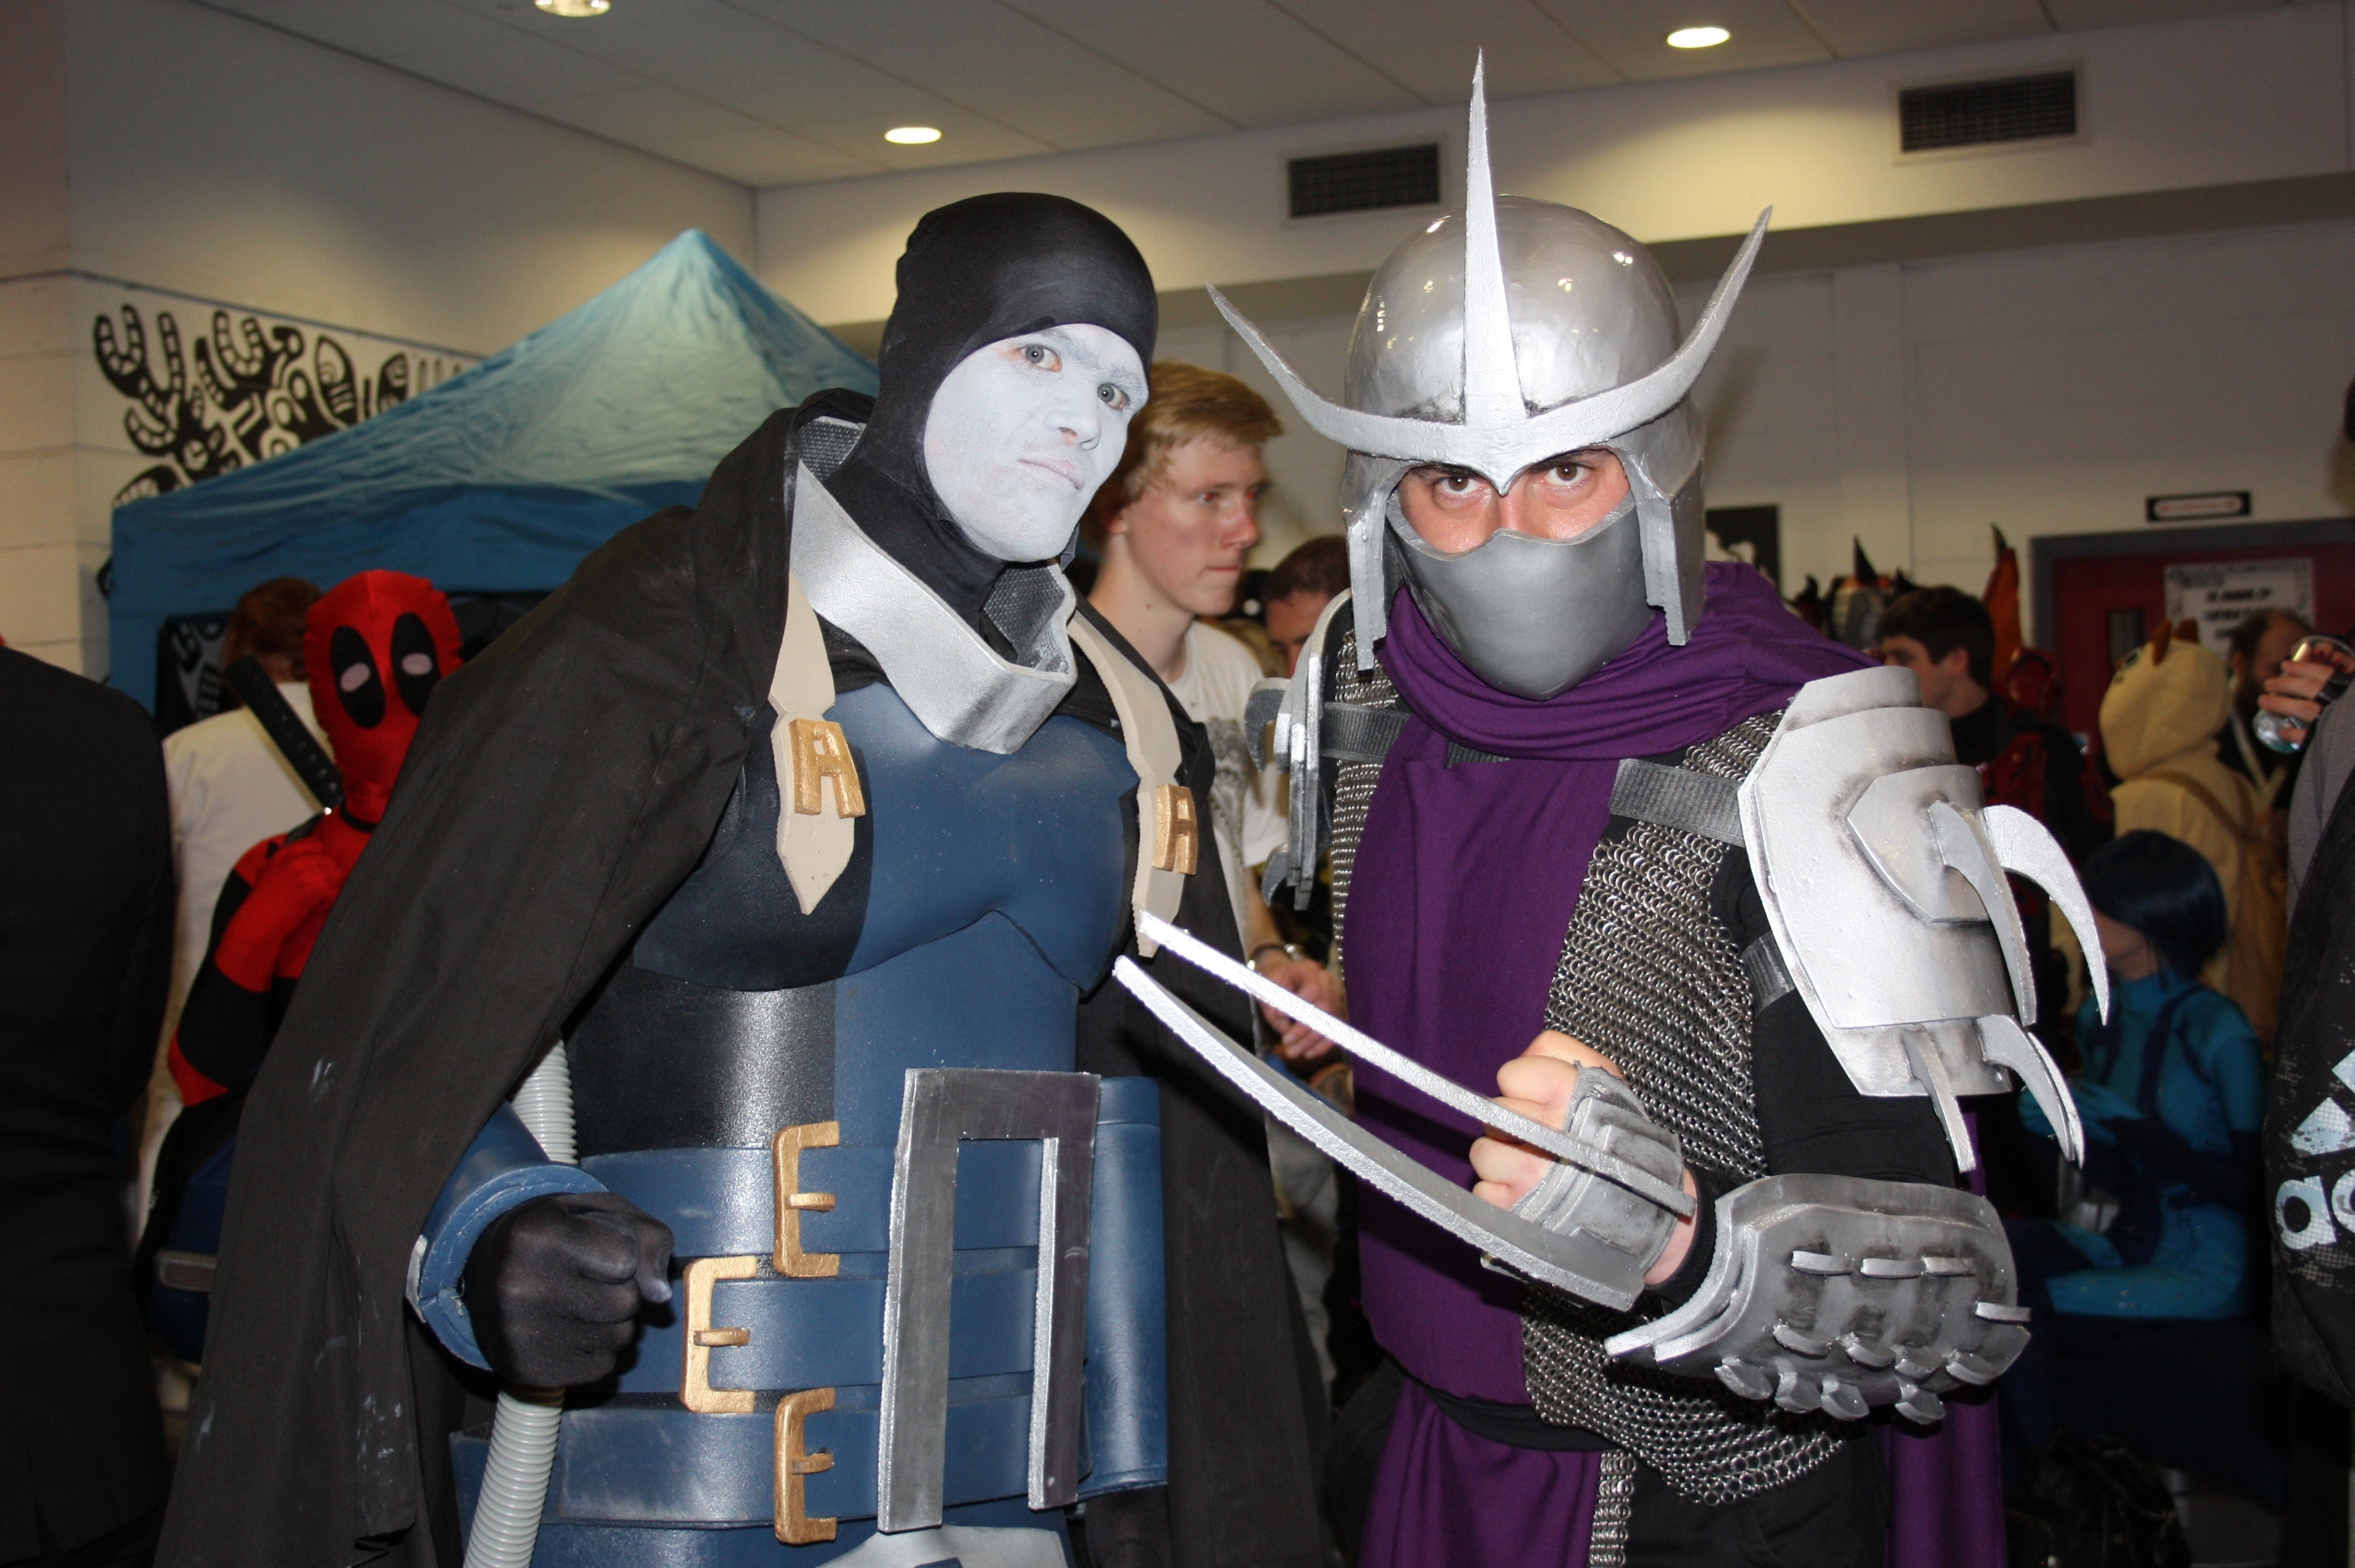 Left to right for spikey blue-faced man in a black hood, and spikey-helmet man with hand-claw: Niall Taylor as Marvel Comics' Apocalypse, and his friend Tim Shread as Shredder from Teenage Mutant Ninja Turtles.